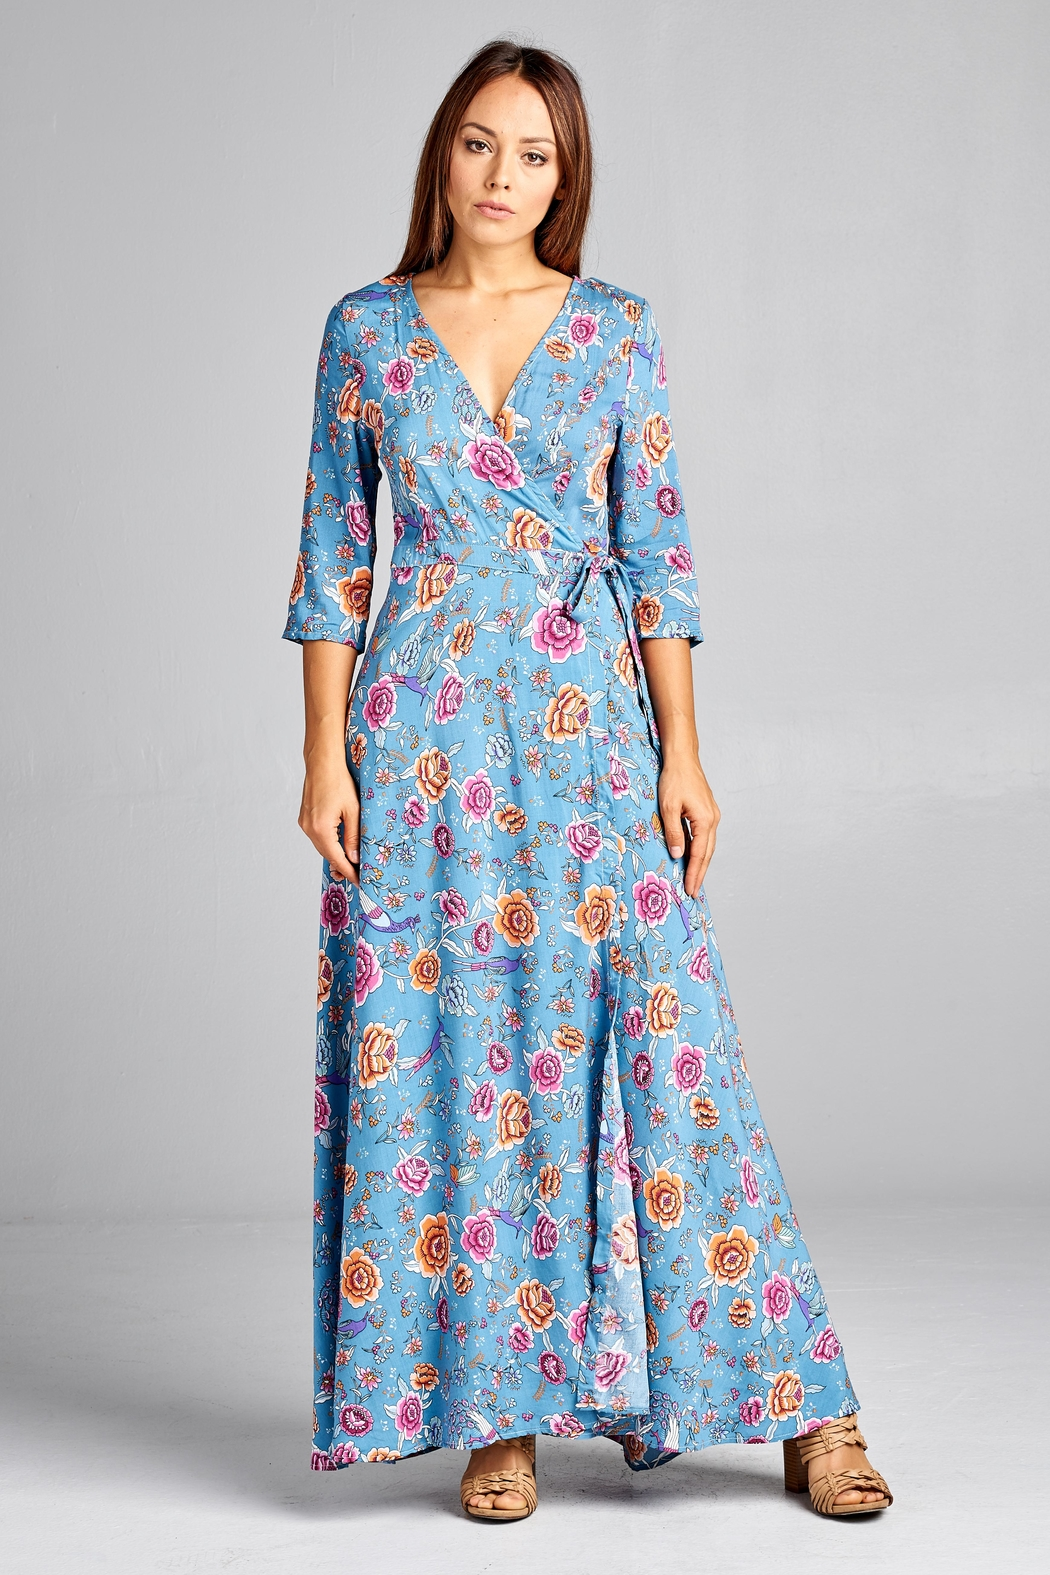 68f29e6344c9 Racine Floral-Wrap Maxi Dress from California by Racine Love ...